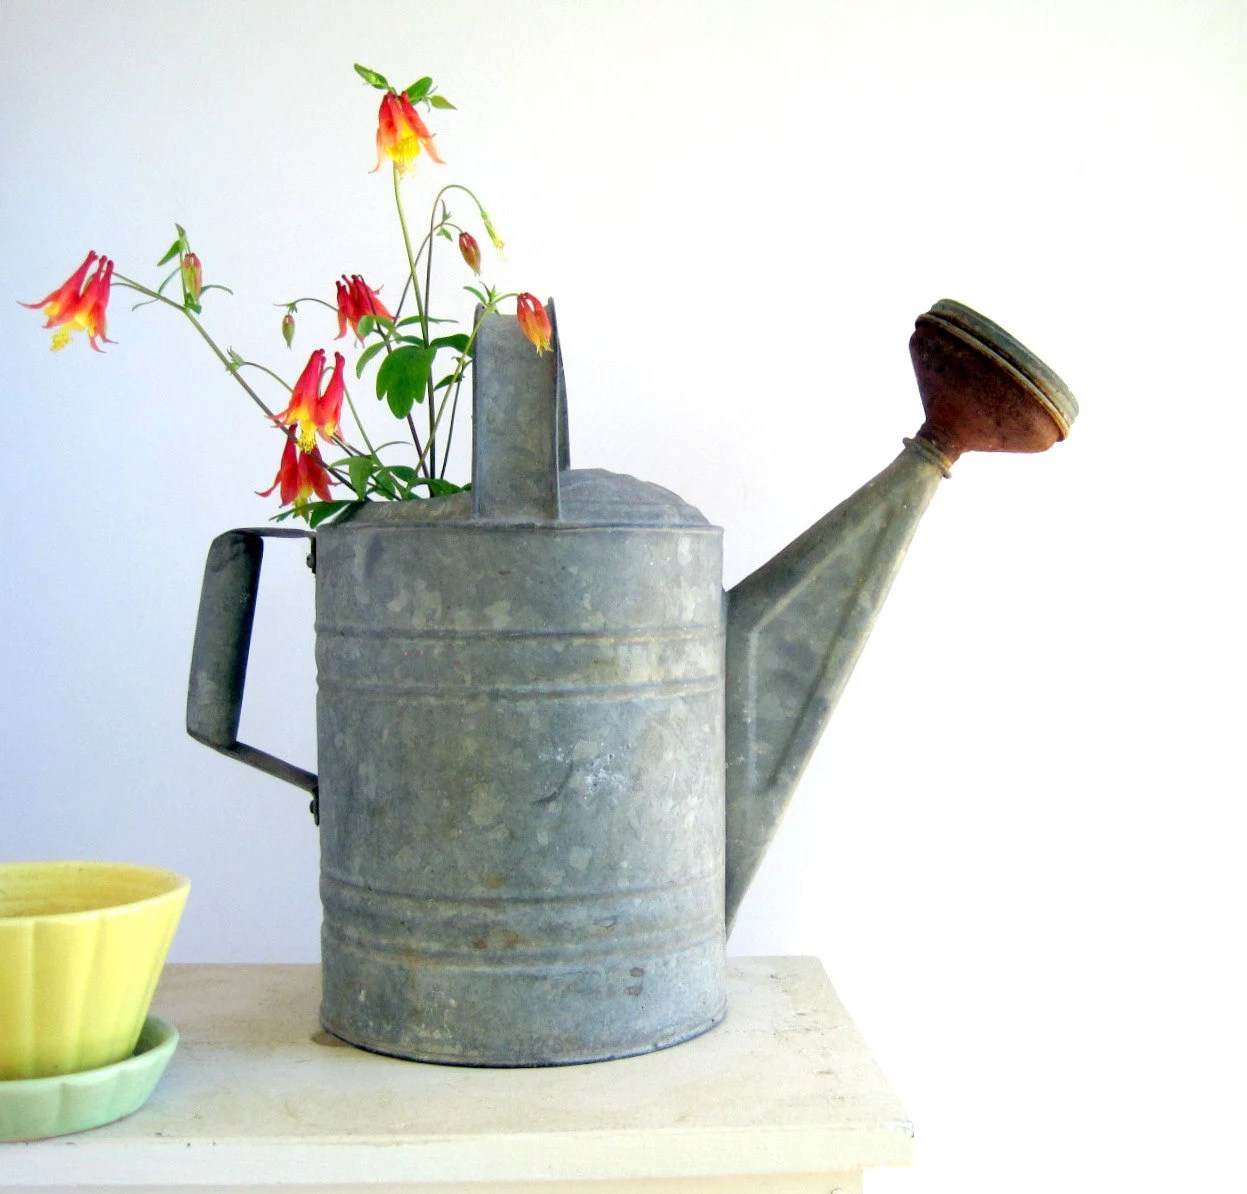 Metal Indoor Watering Can Vintage Galvanized Metal Watering Can With Spout